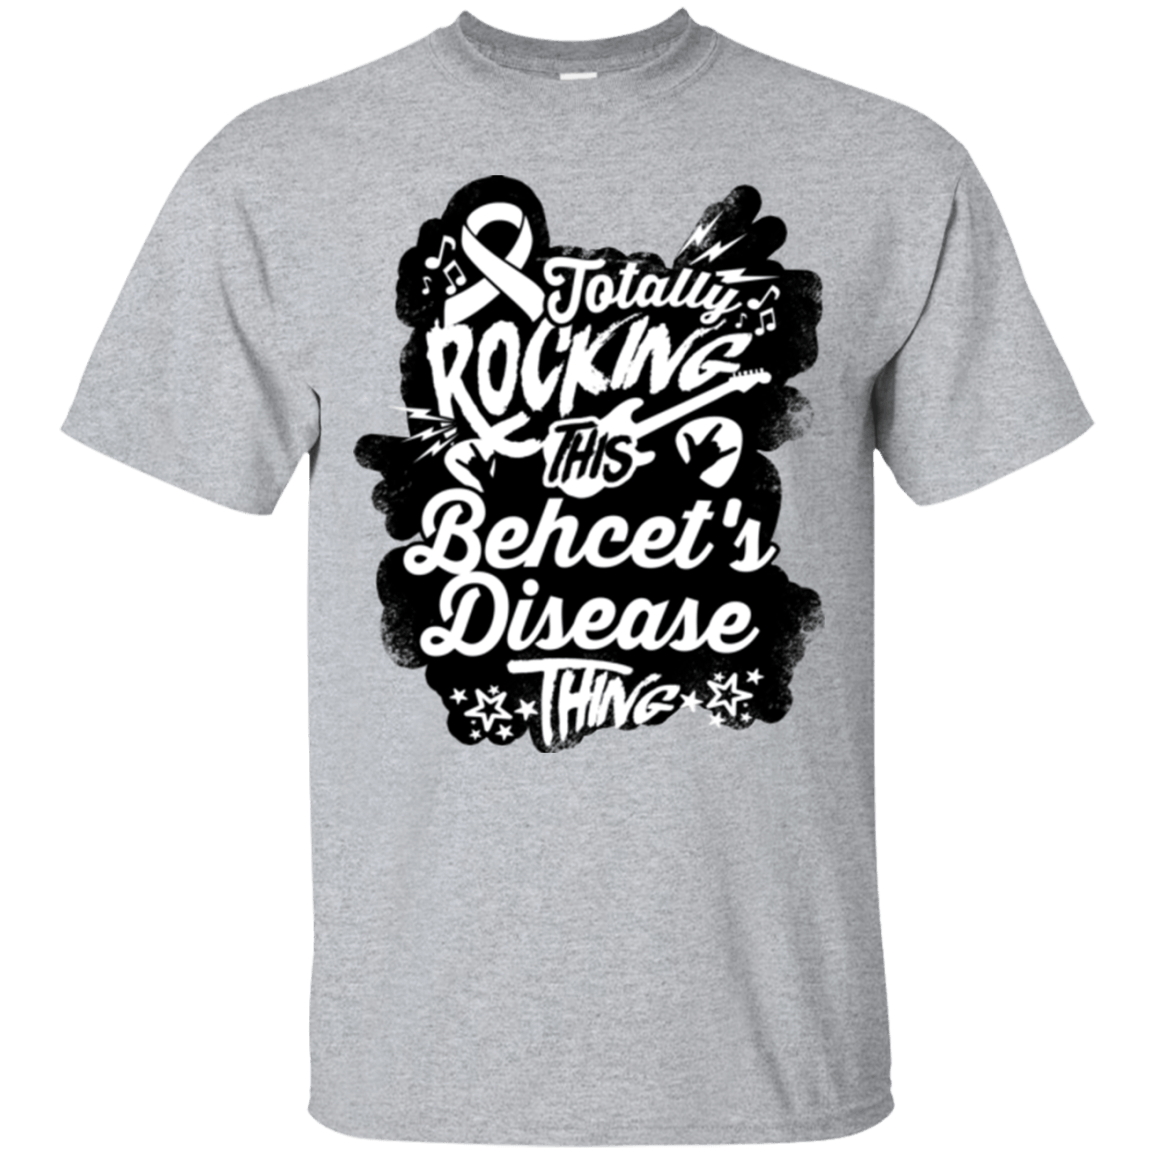 Rocking Behcet's Disease Unisex Shirt - The Unchargeables